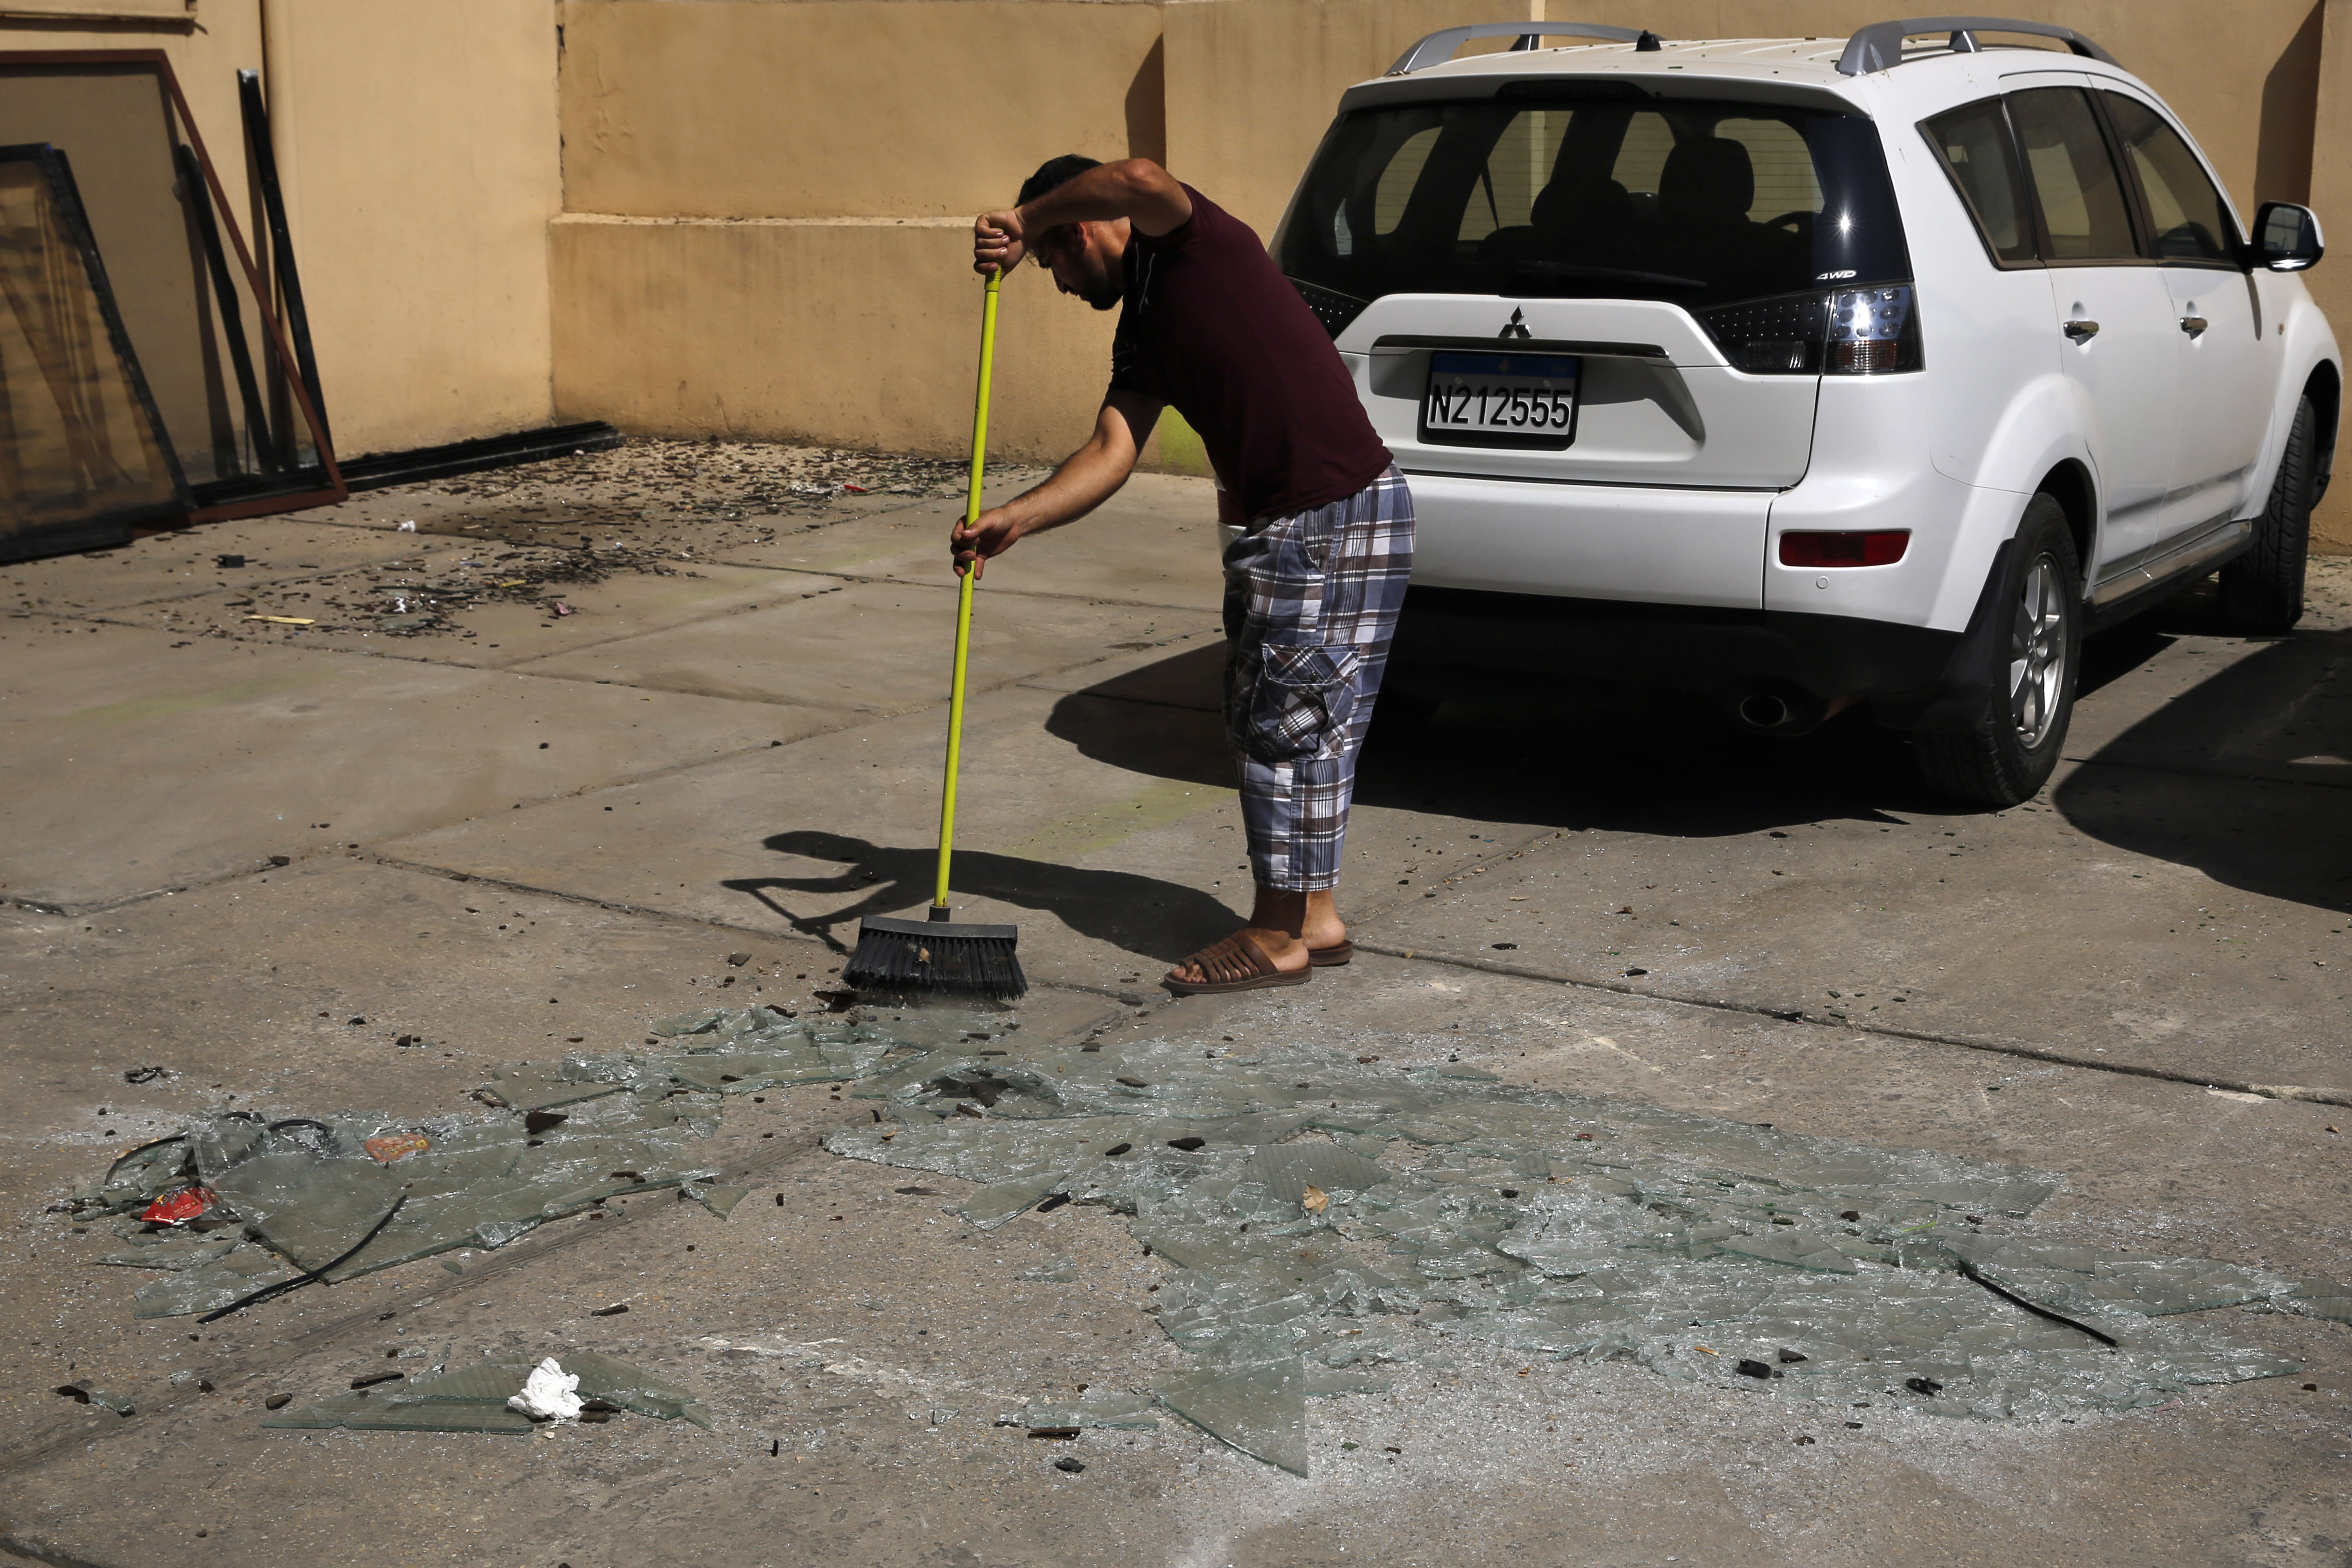 A man sweeps broken glass near the 11th-floor building that houses the media office in a stronghold of the Lebanese Hezbollah group, in a southern suburb of Beirut, Lebanon, Sunday, Aug. 25, 2019. Two Israeli drones crashed into the Hezbollah stronghold in the Lebanese capital overnight without the militants firing on them, a spokesman for the group said Sunday, saying the first fell on the roof of a building housing Hezbollah's media office while the second landed in a plot behind it. (AP Photo/Bilal Hussein)